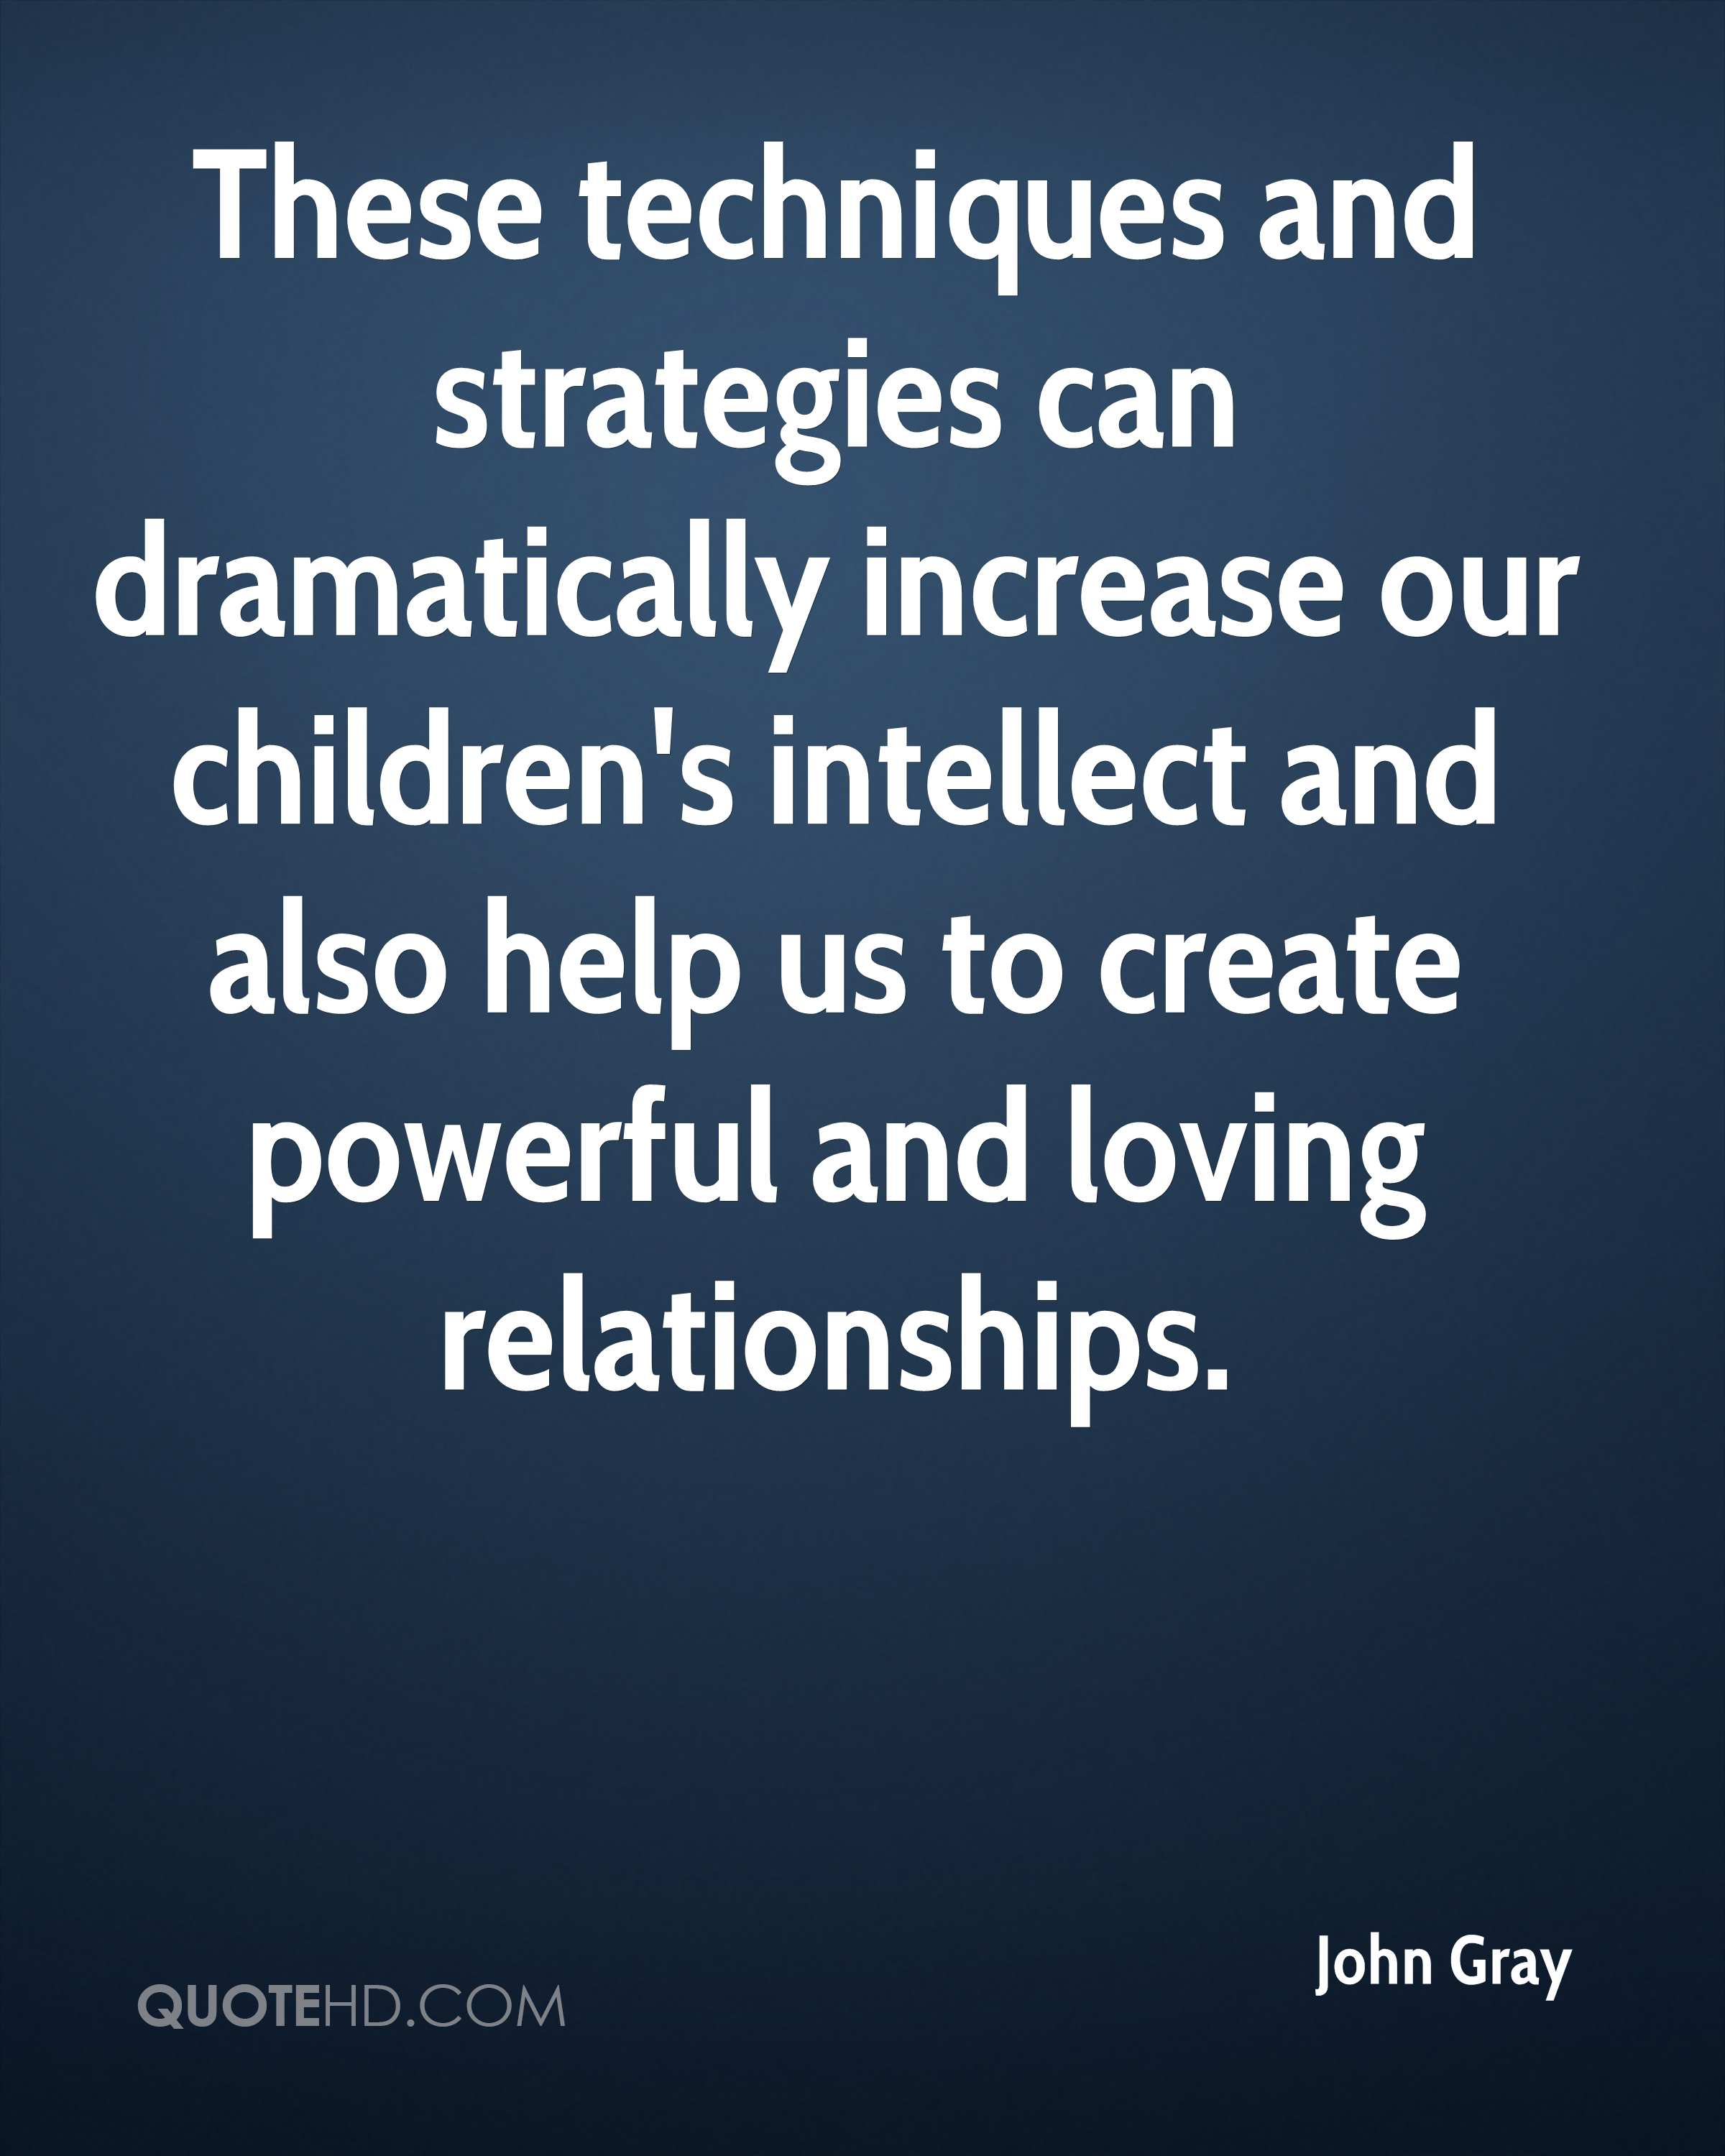 These techniques and strategies can dramatically increase our children's intellect and also help us to create powerful and loving relationships.